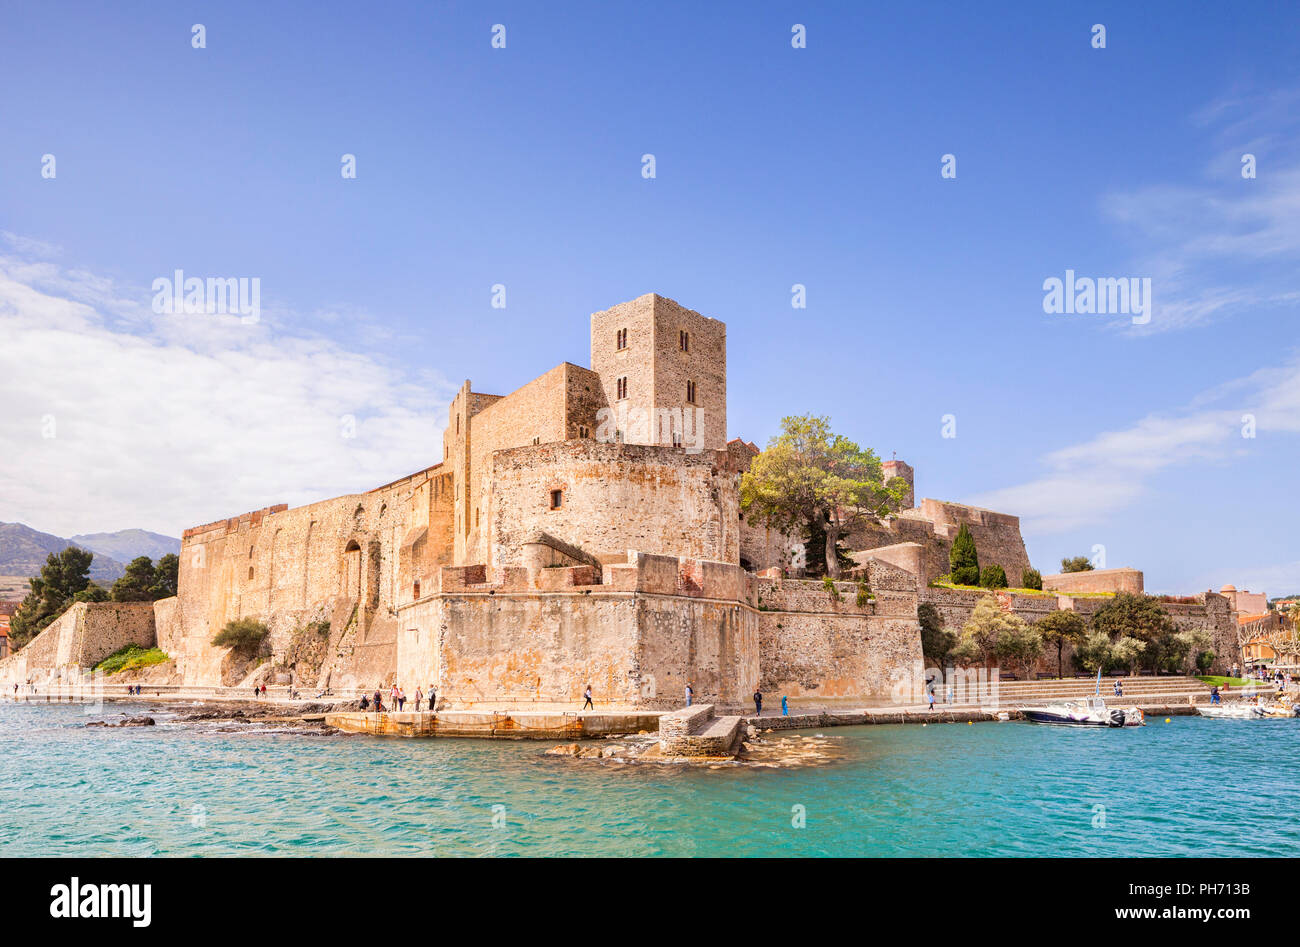 Royal Chateau, Collioure, Languedoc-Roussillon, Pyrenees-Orientales, France. Stock Photo